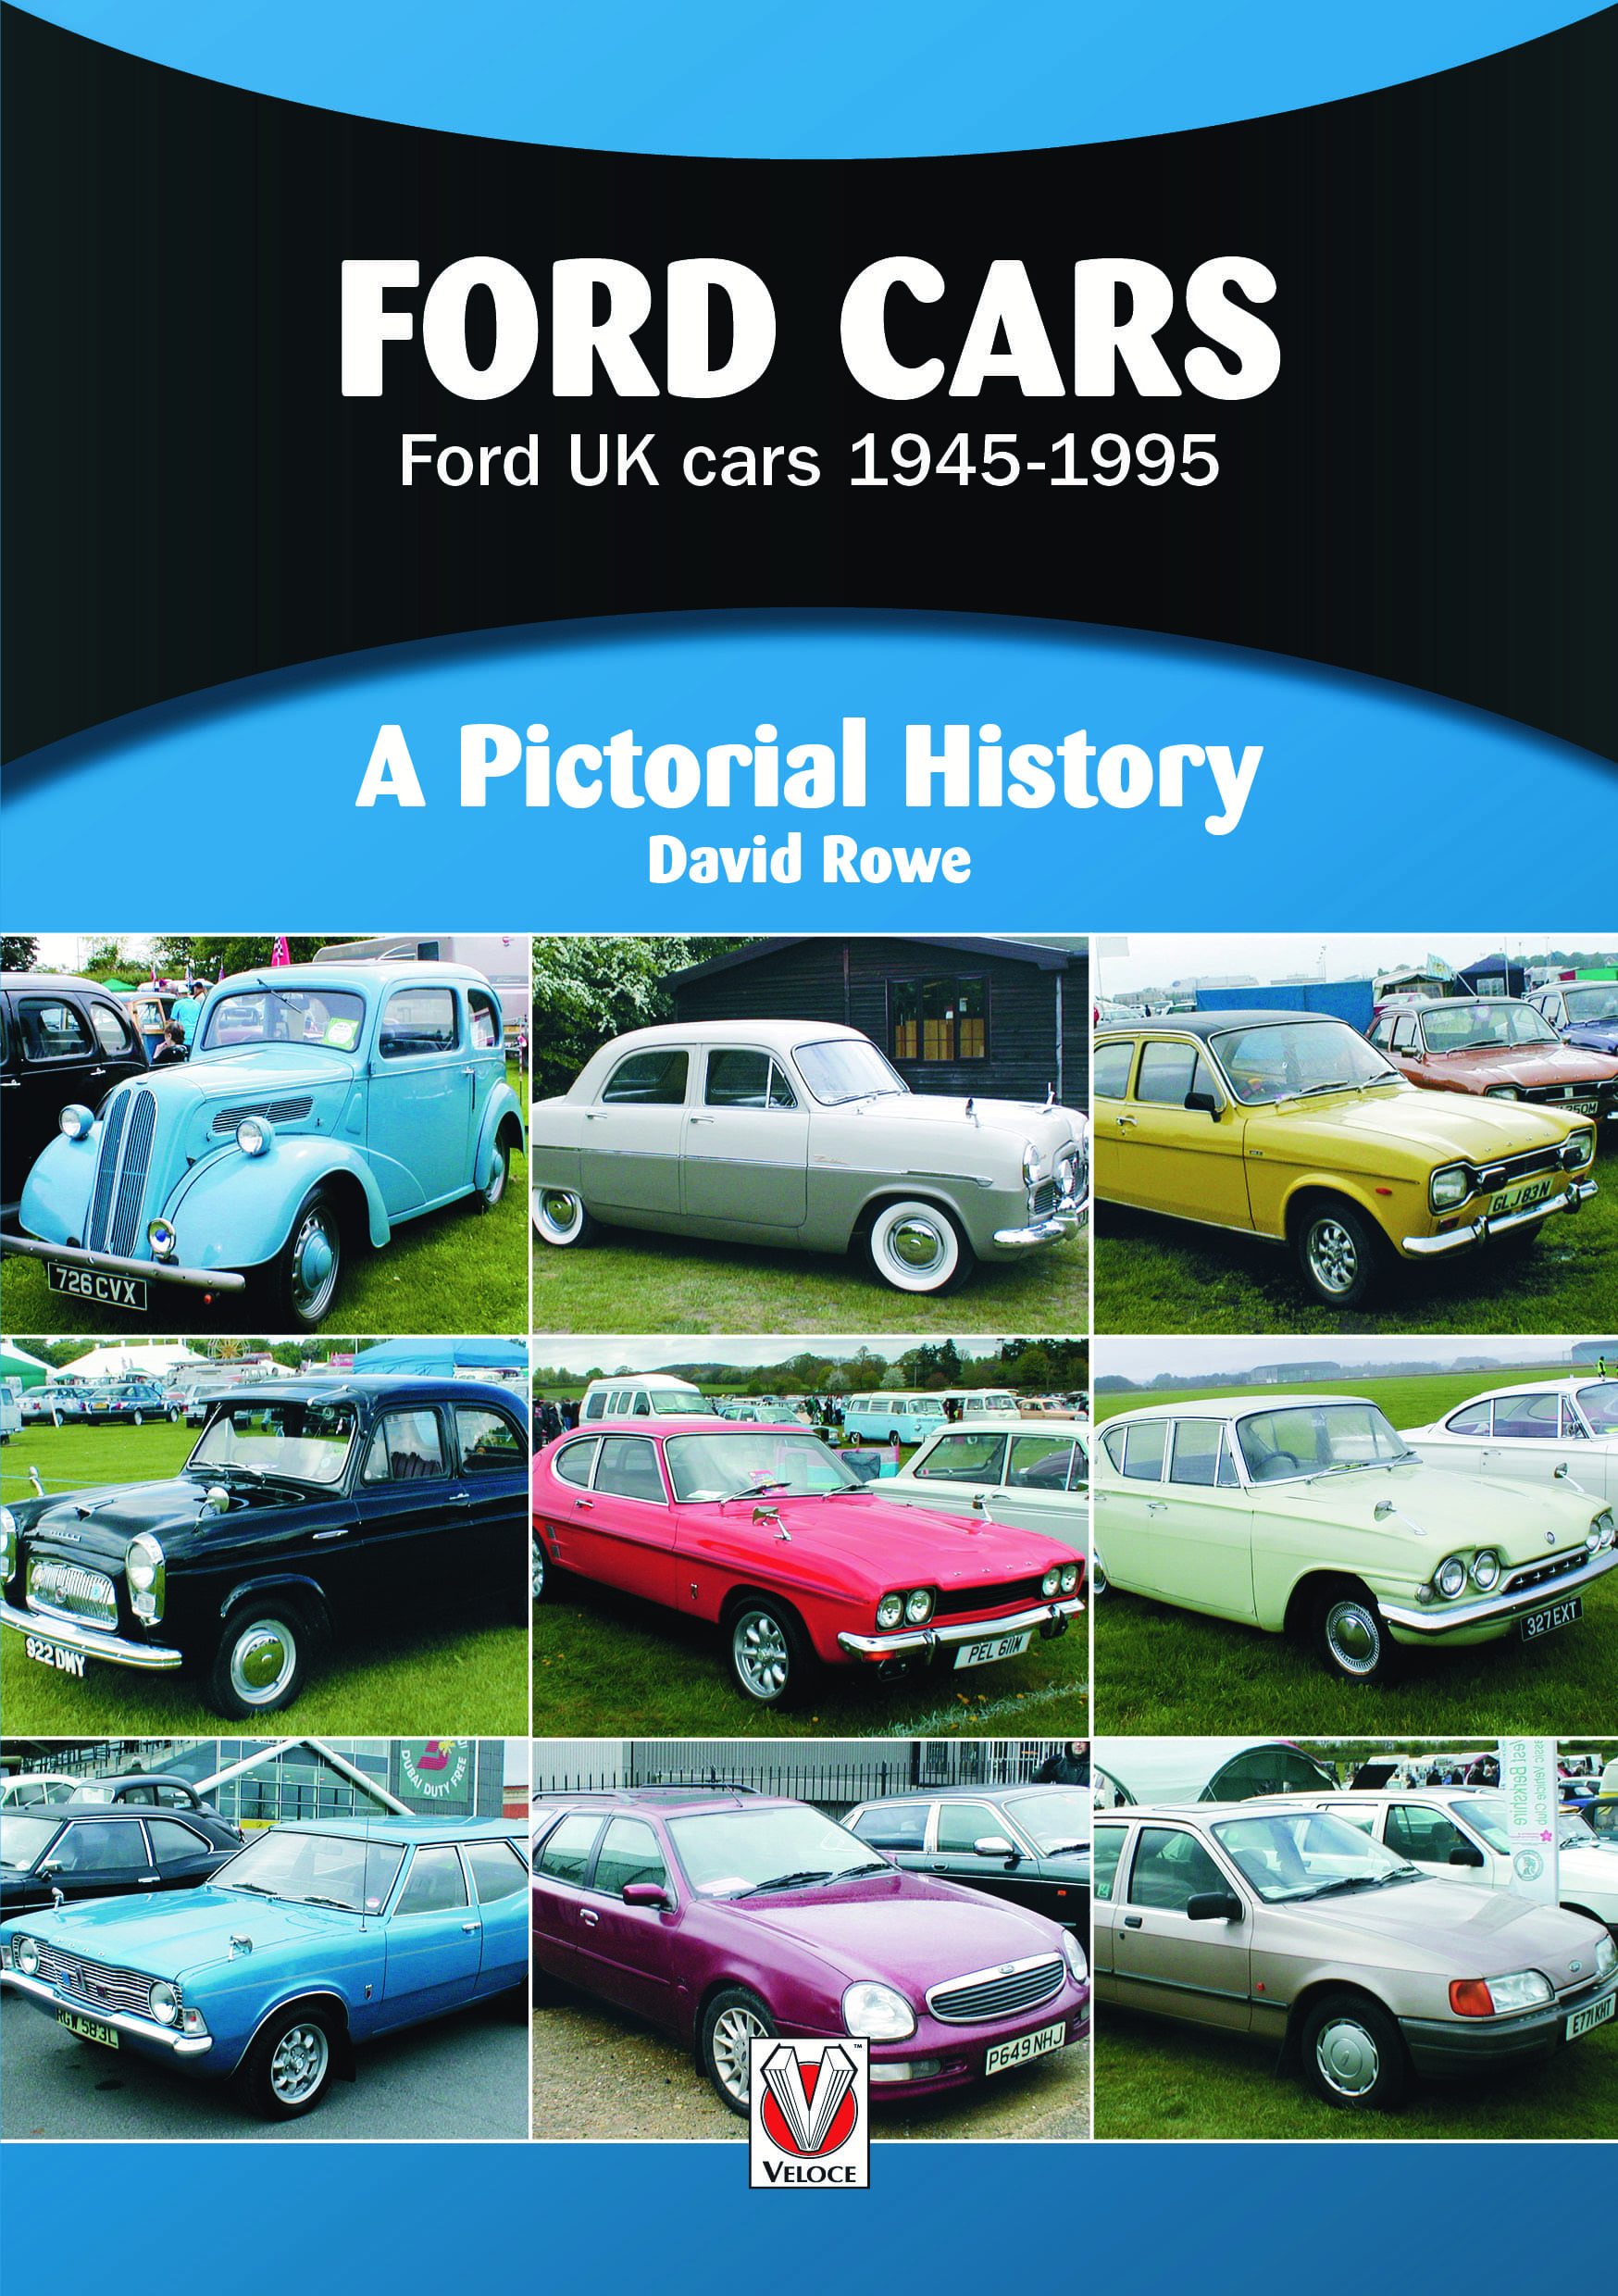 Ford UK cars 1945-1995 - A Pictorial History